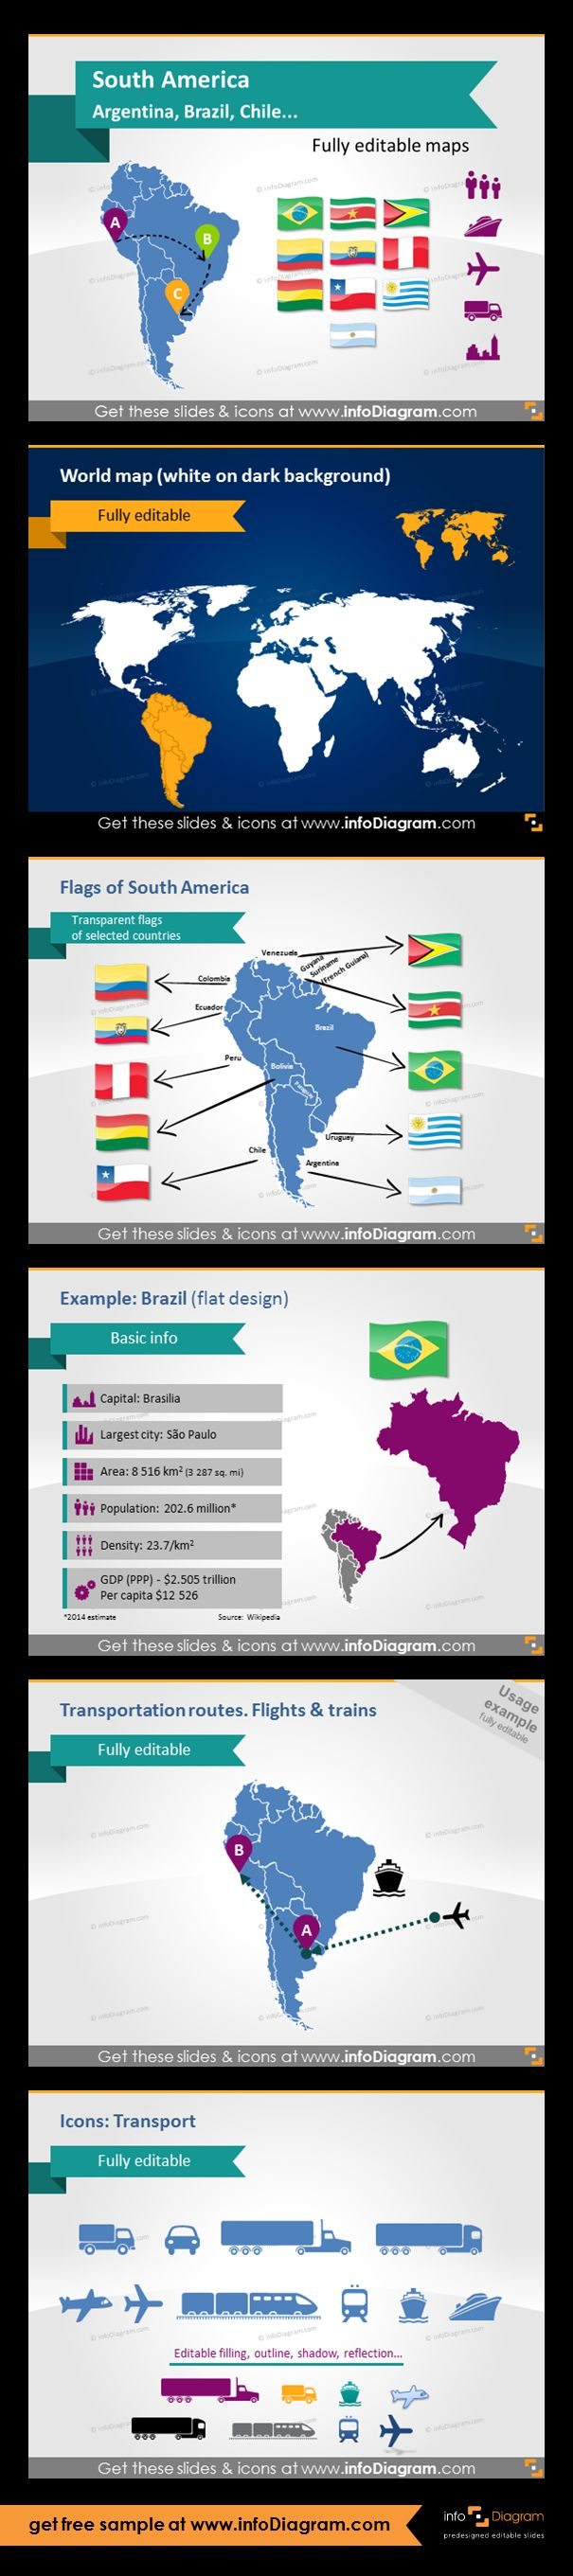 World Map With Dark Background Flags Of South America Brazil Map With Basic Information Transportation